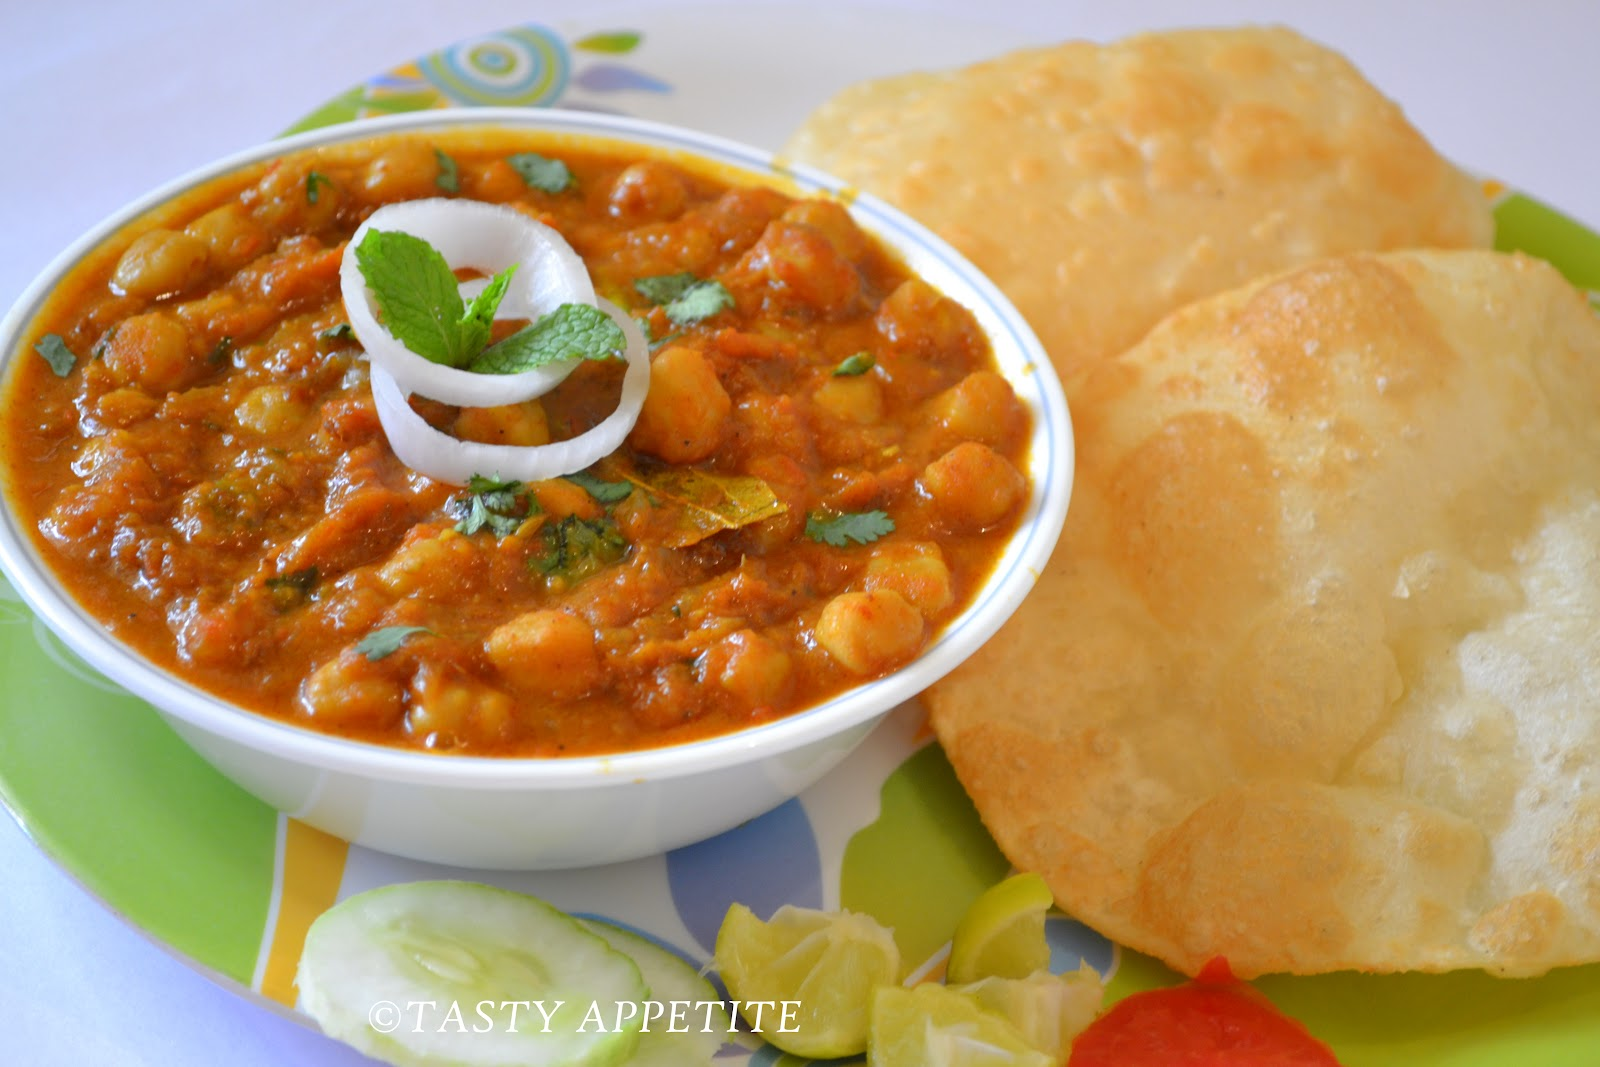 Authentic Indian Food Recipes From India